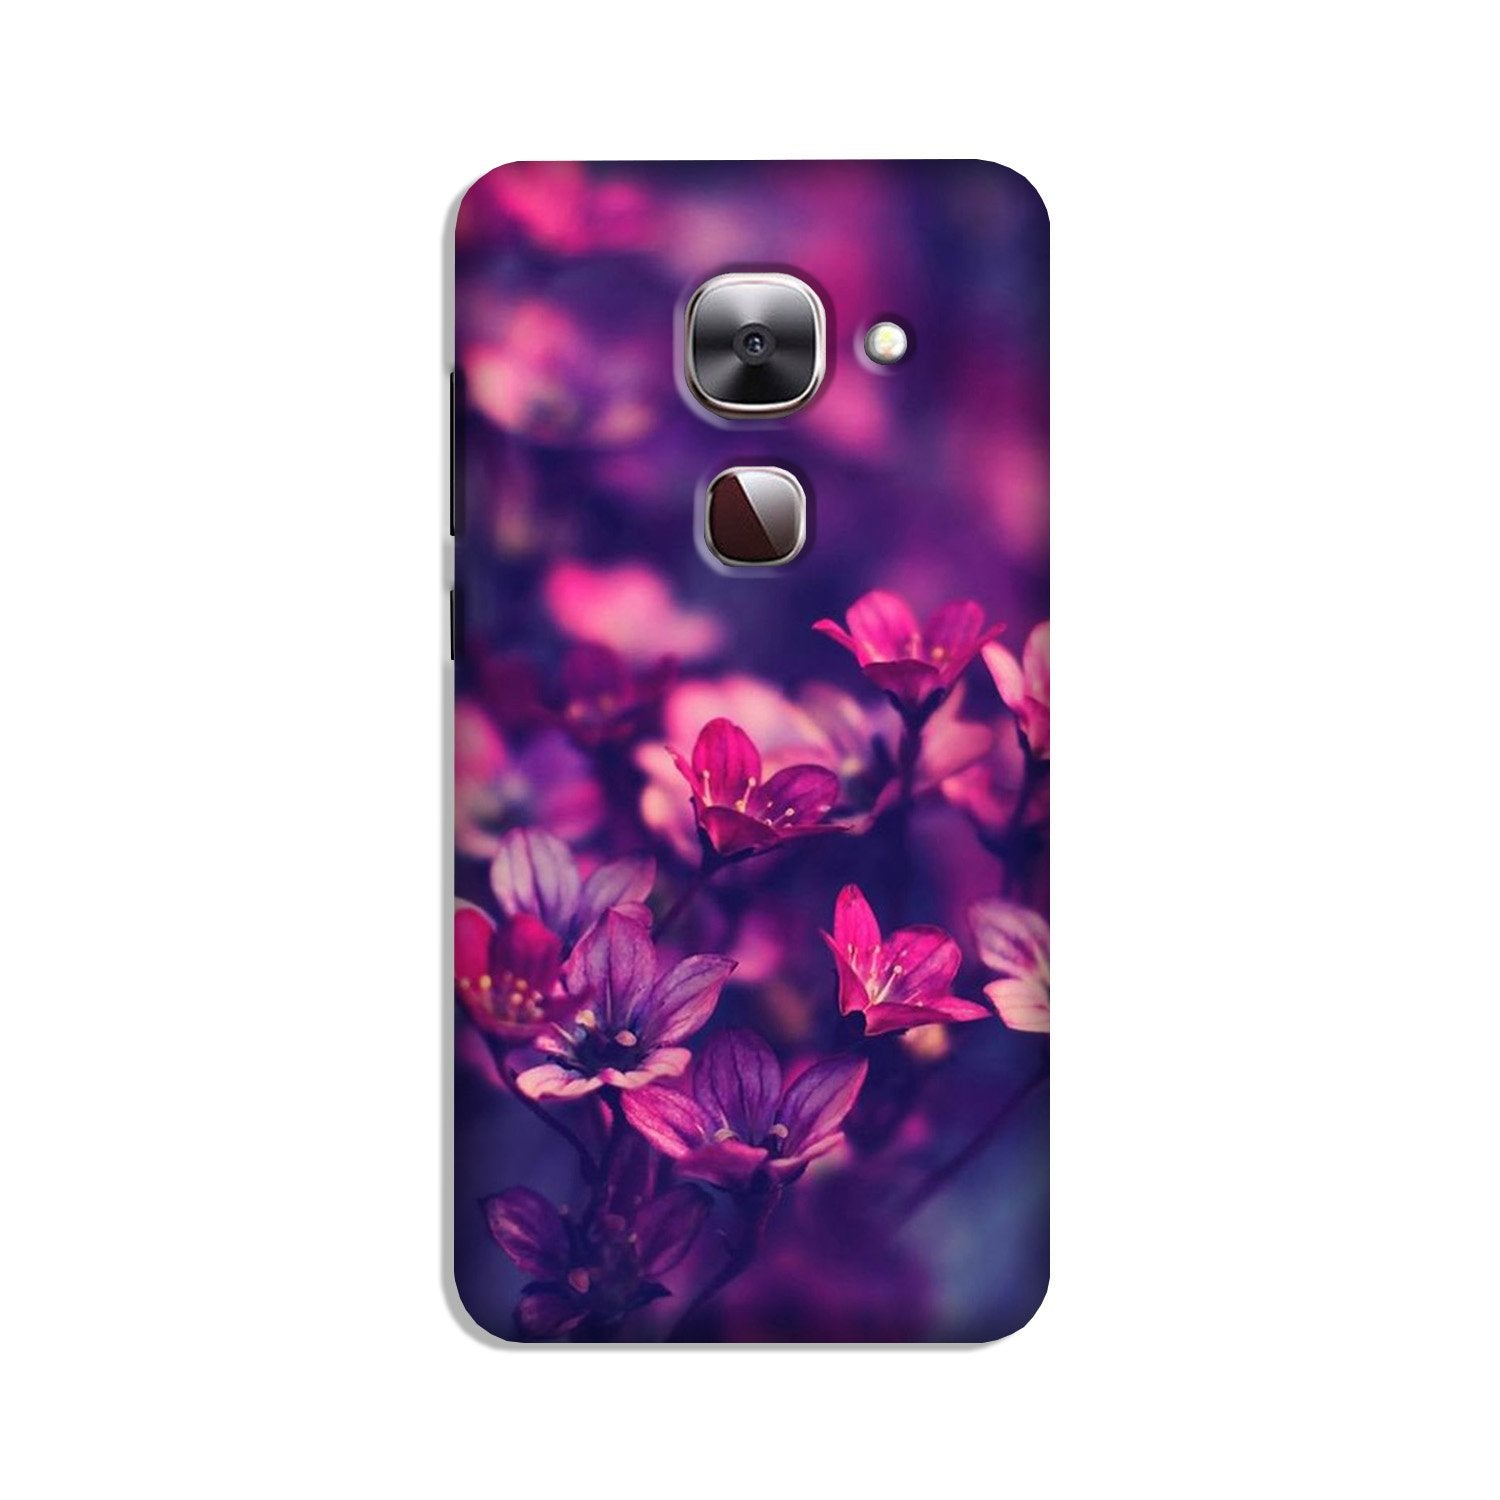 flowers Case for LeEco le 2s